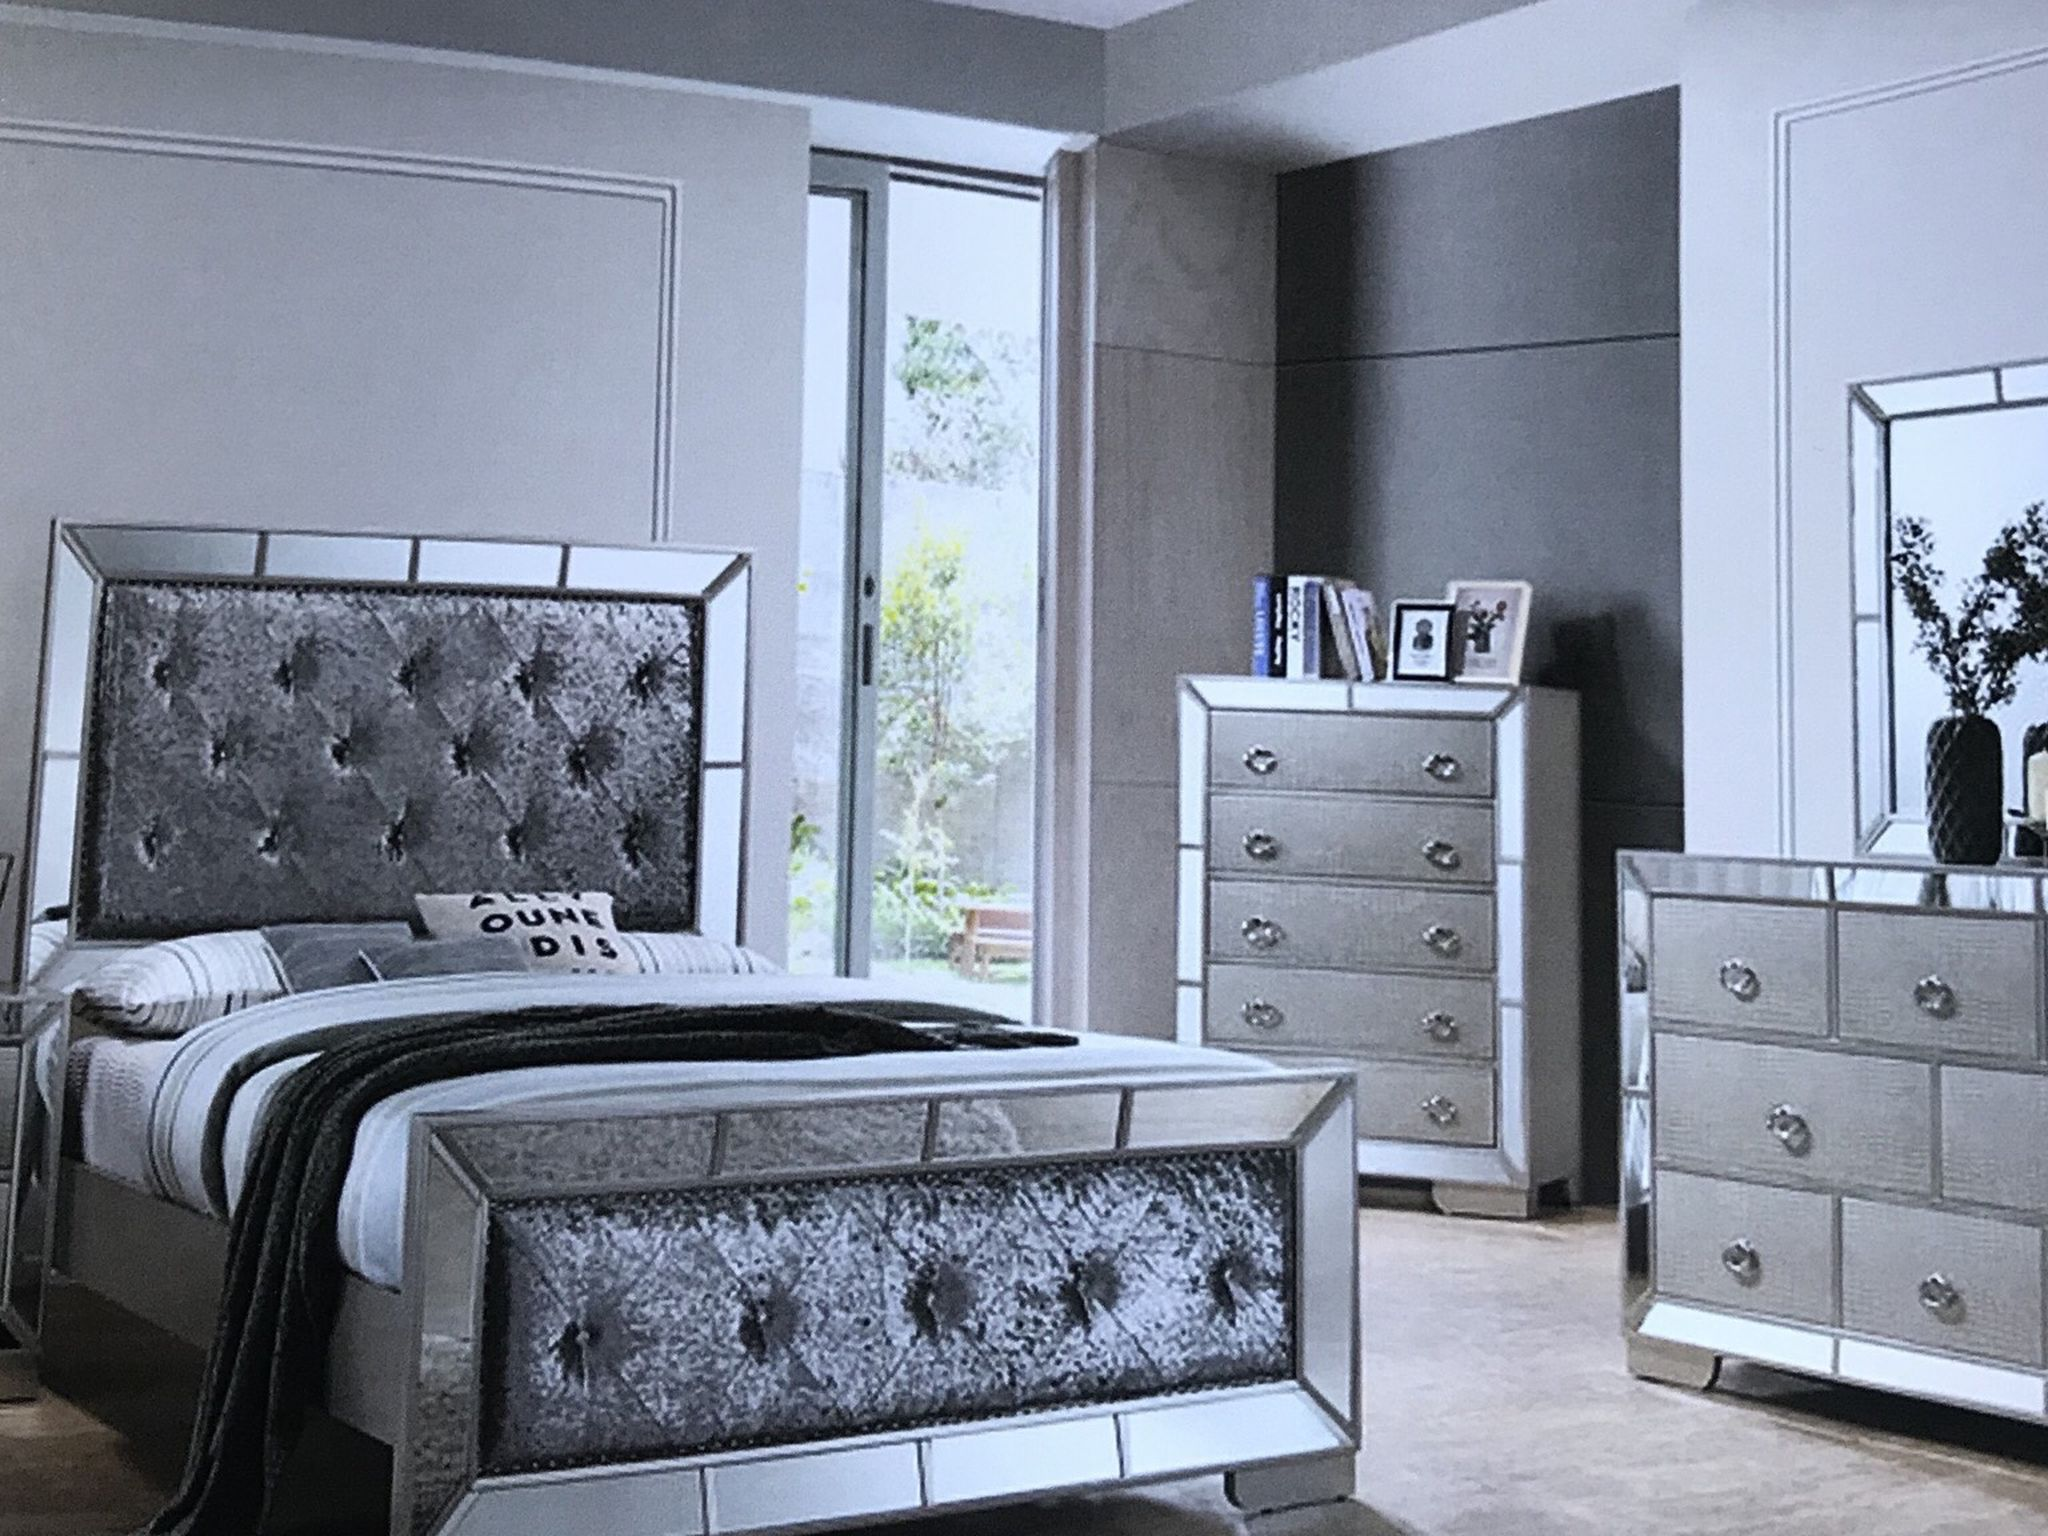 Brand New Queen Size Bedroom Set$$-1499. Financing Available No Credit Needed